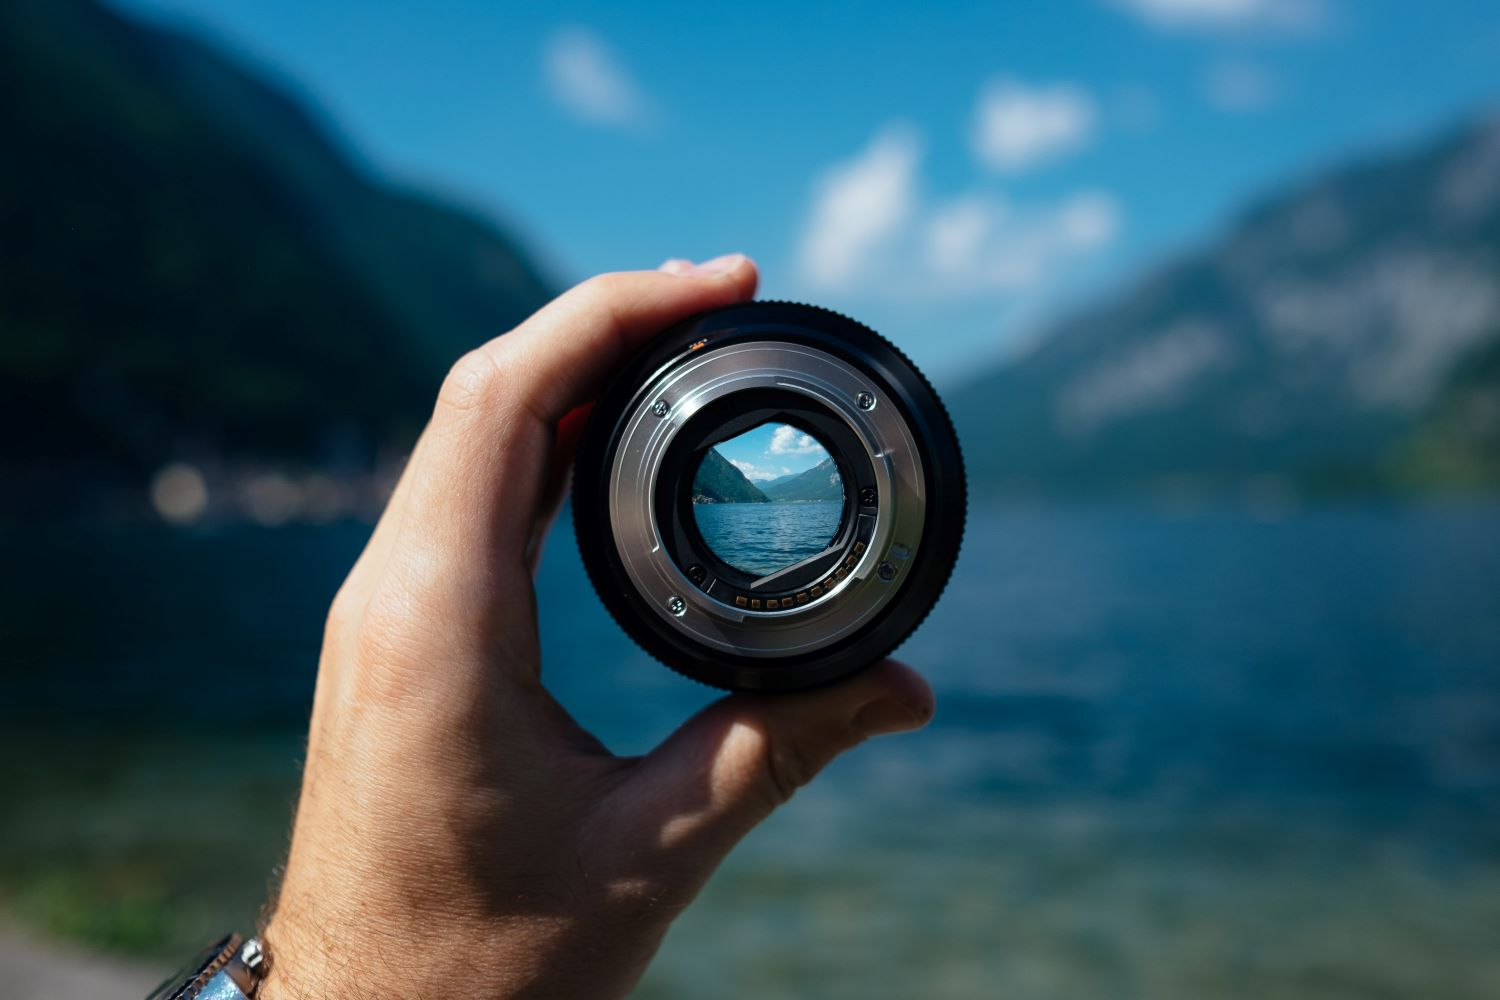 person holding up a lens and looking through the center